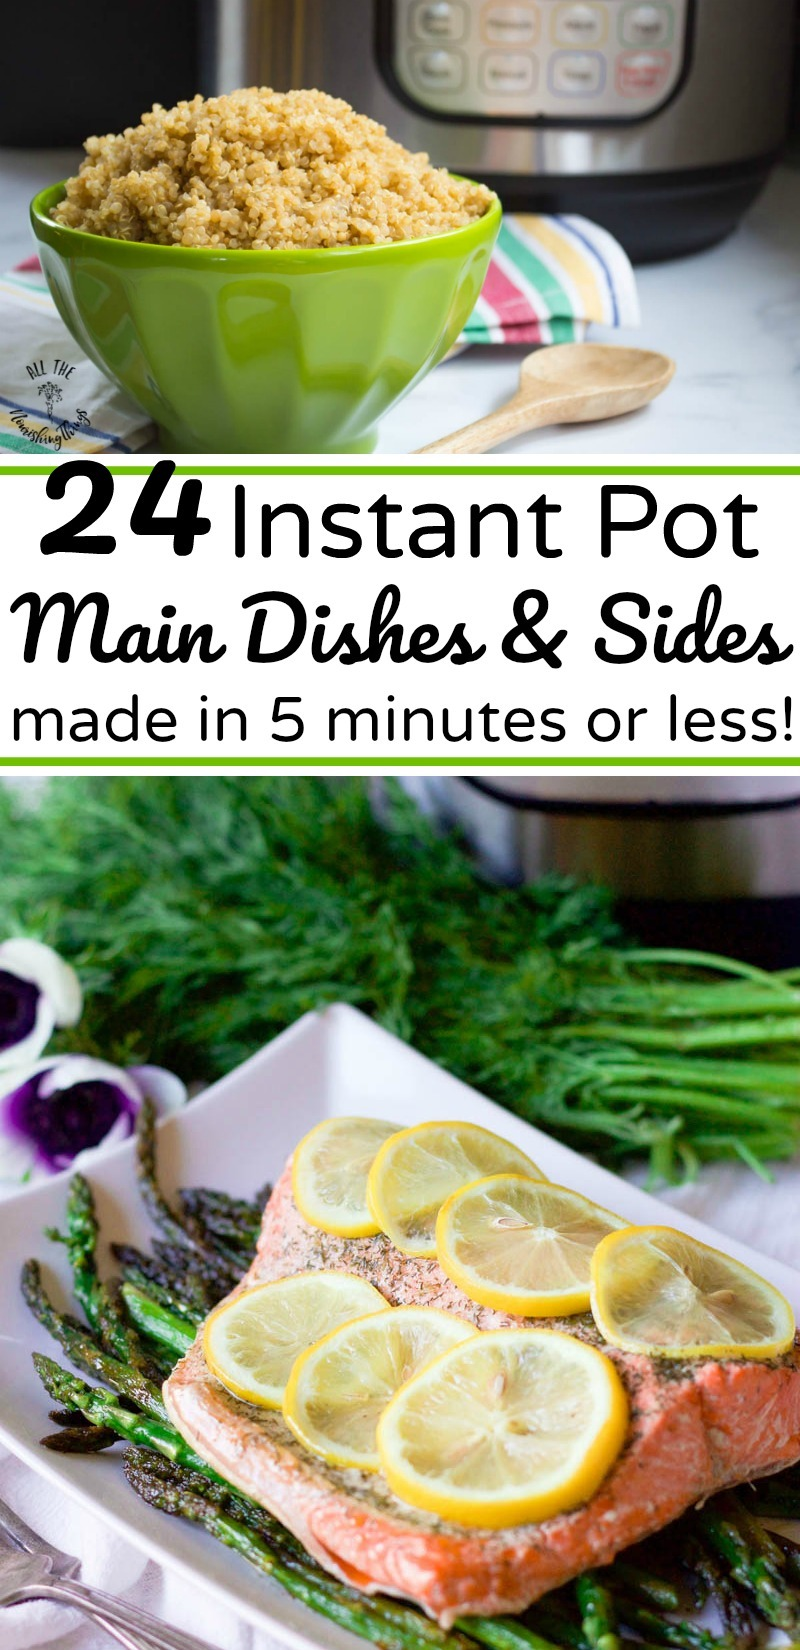 instant pot salmon and quinoa made in 5 minutes or less with text overlay